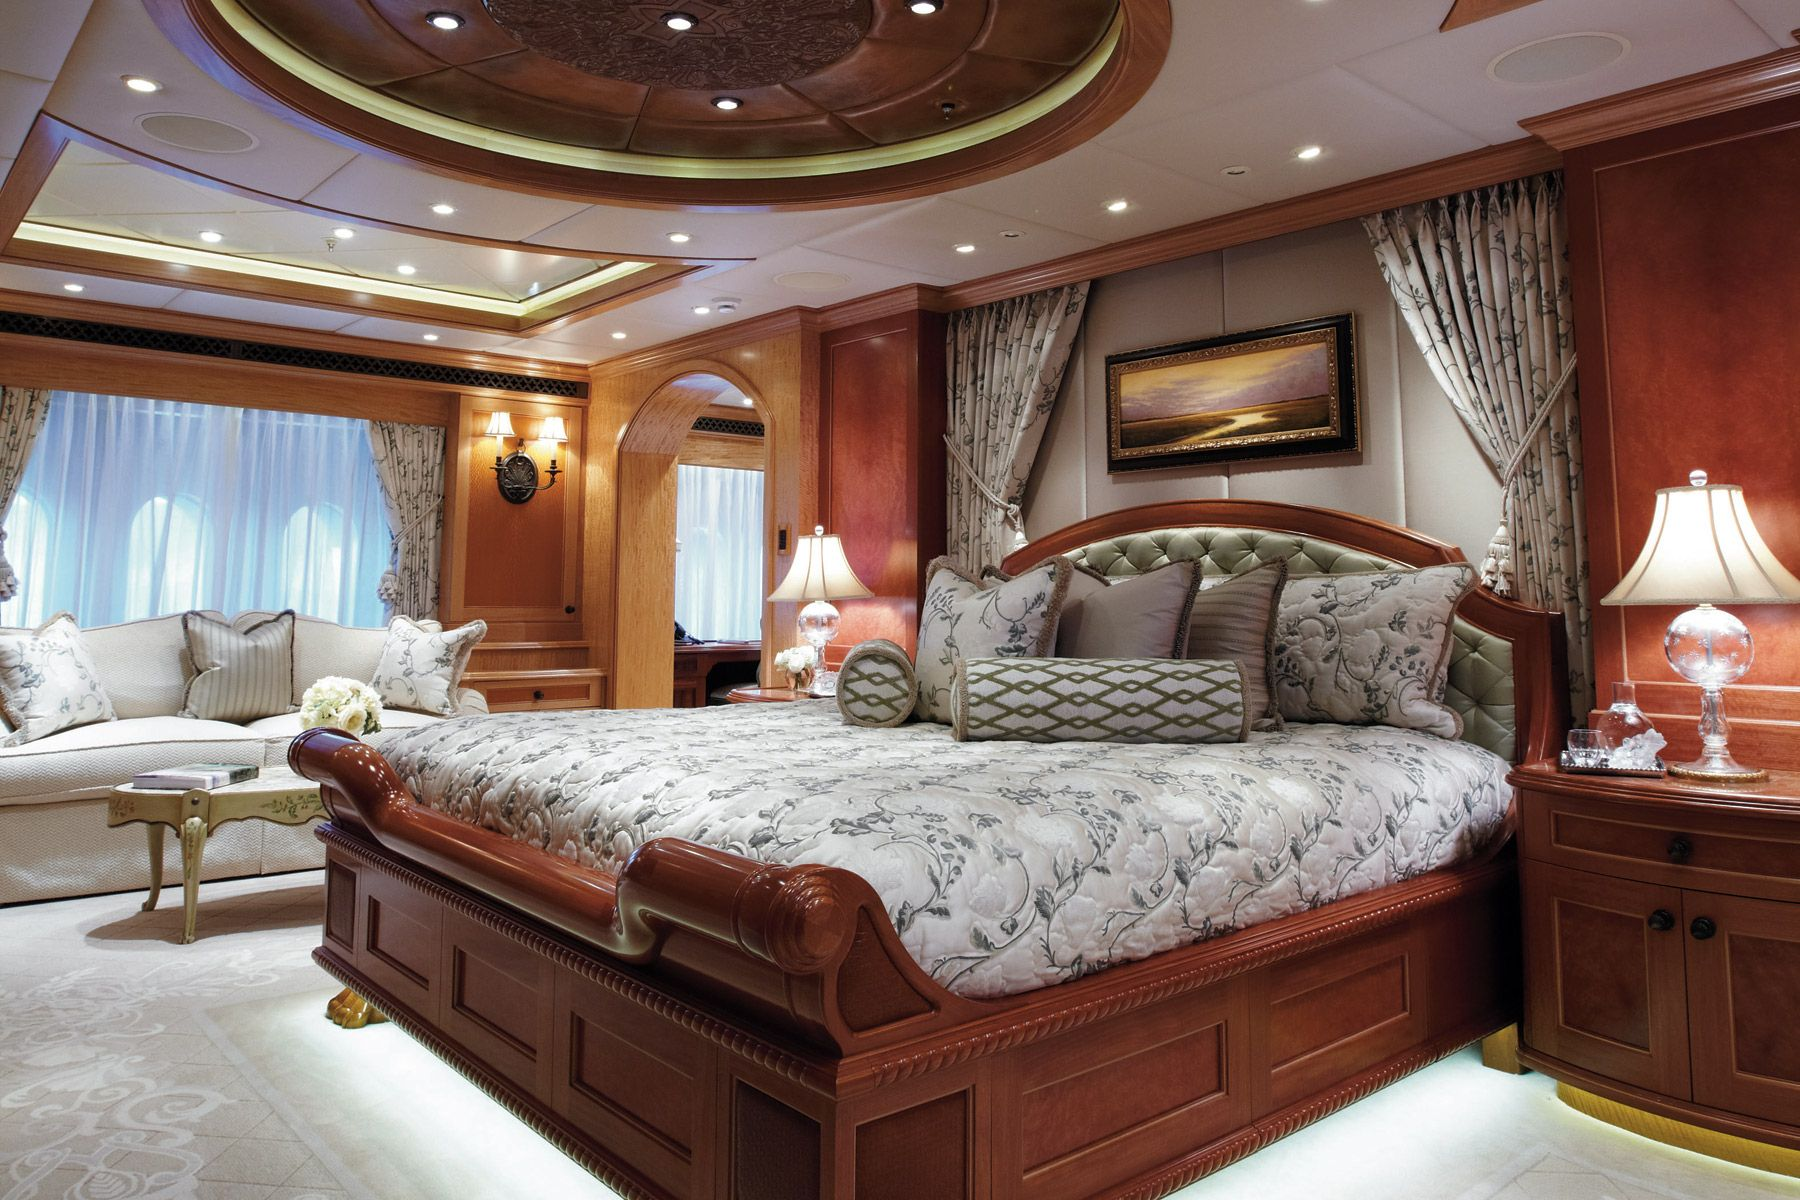 Unbridled At Y Co Luxurious Bedrooms Luxury Yacht Interior Luxury Yachts Yacht bedroom interior design